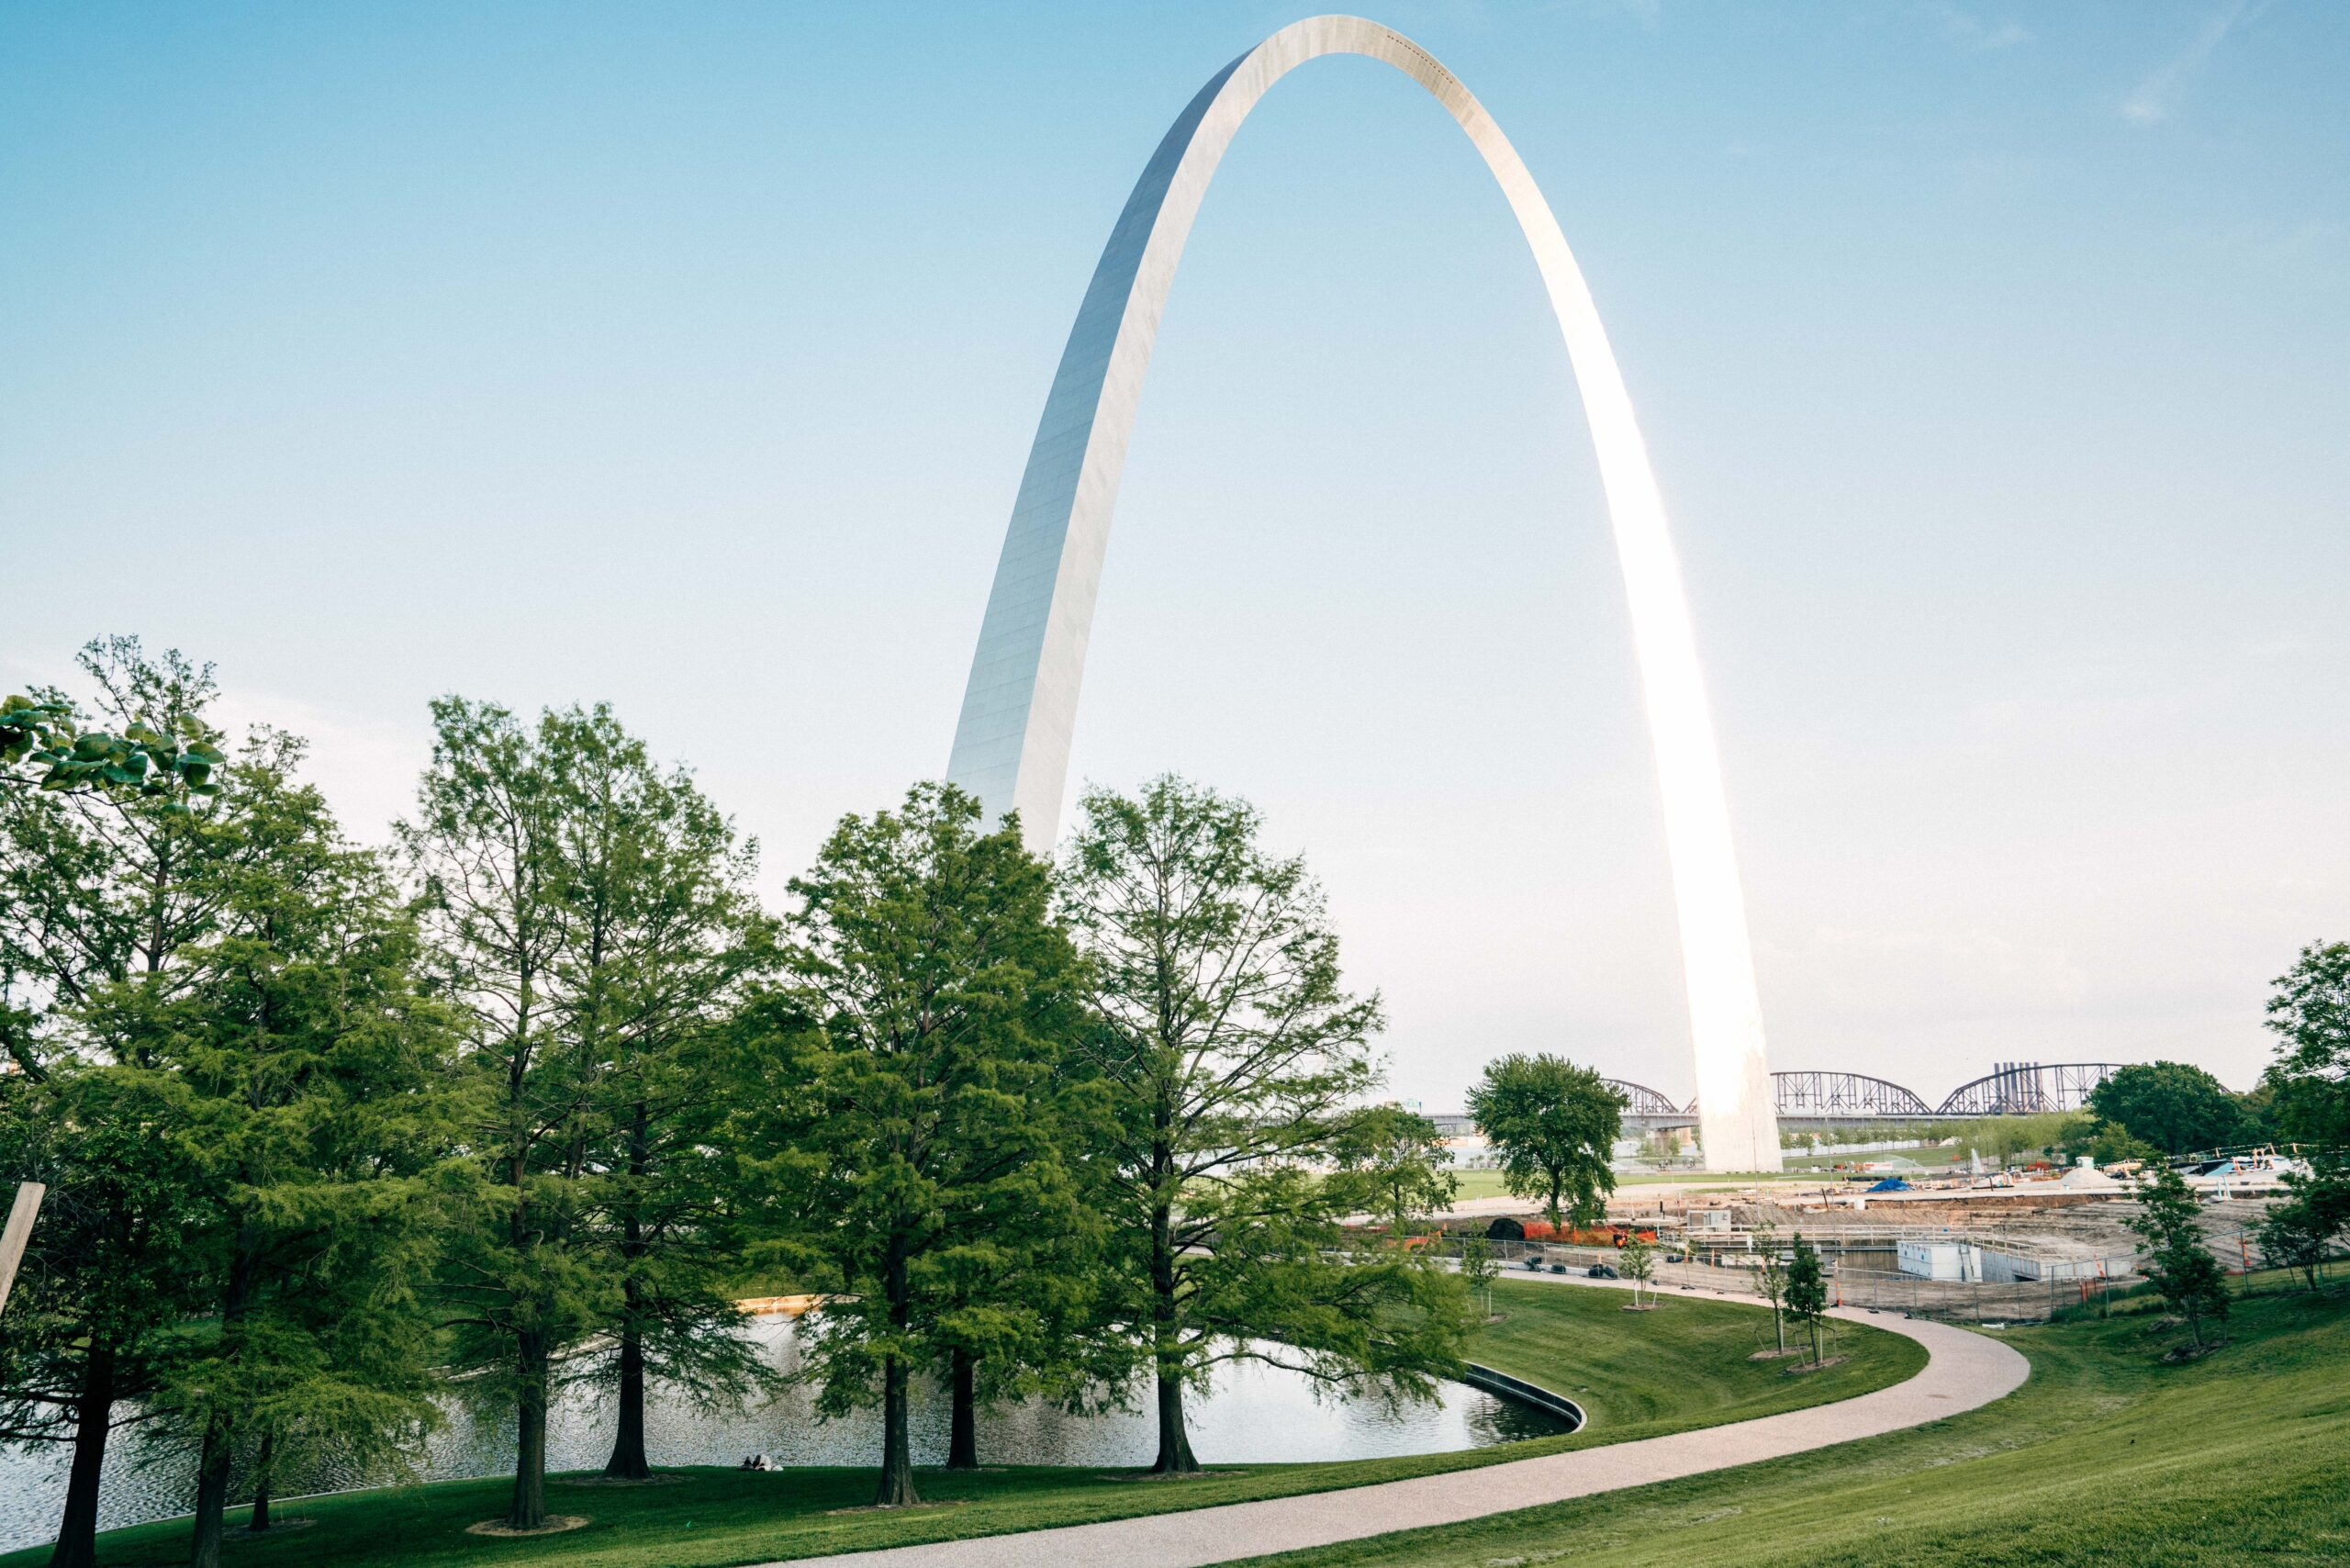 ly-throughs of the Gateway Arch